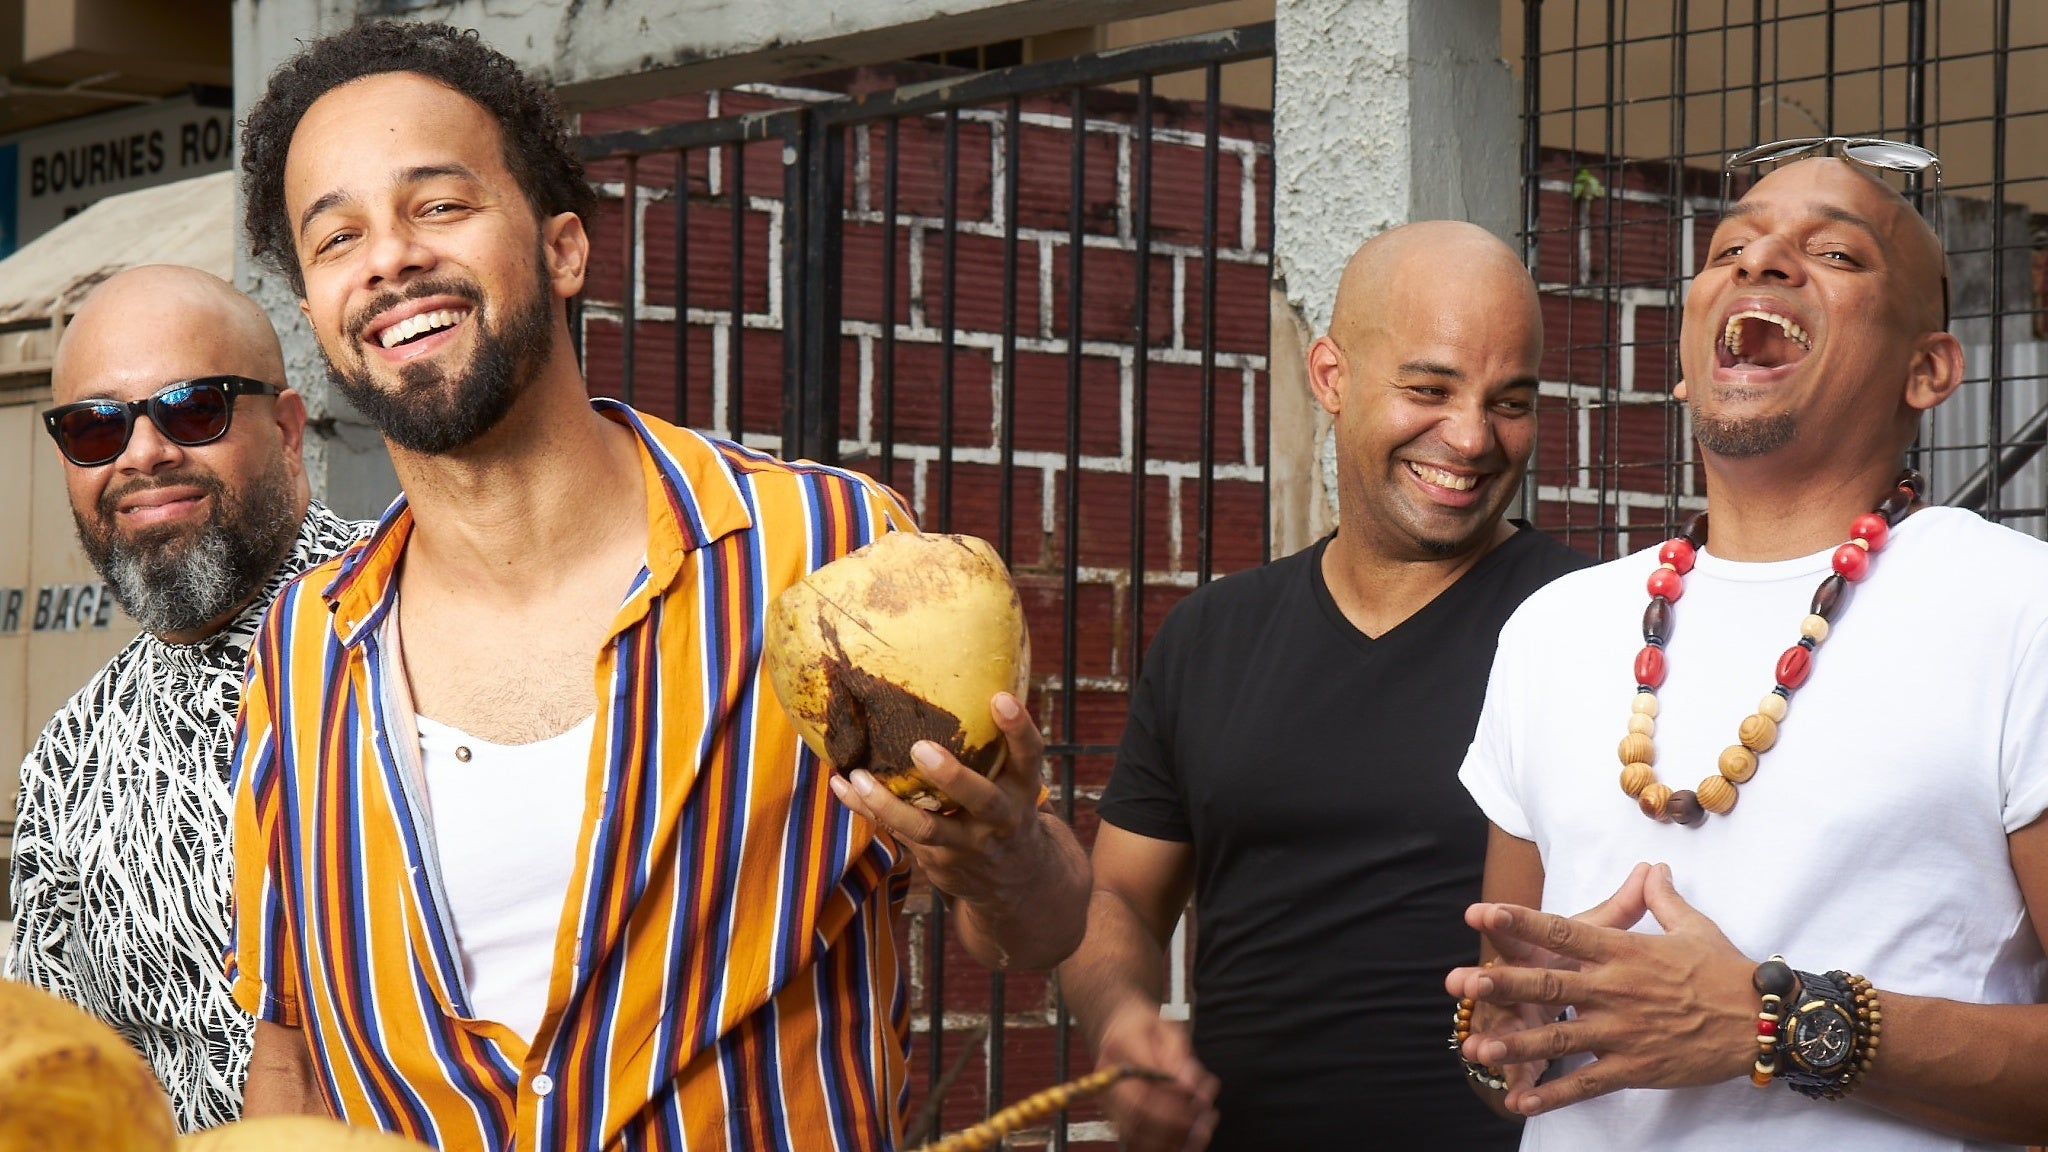 Trinidad & Tobago's Kes The Band Is Back With New Live Album